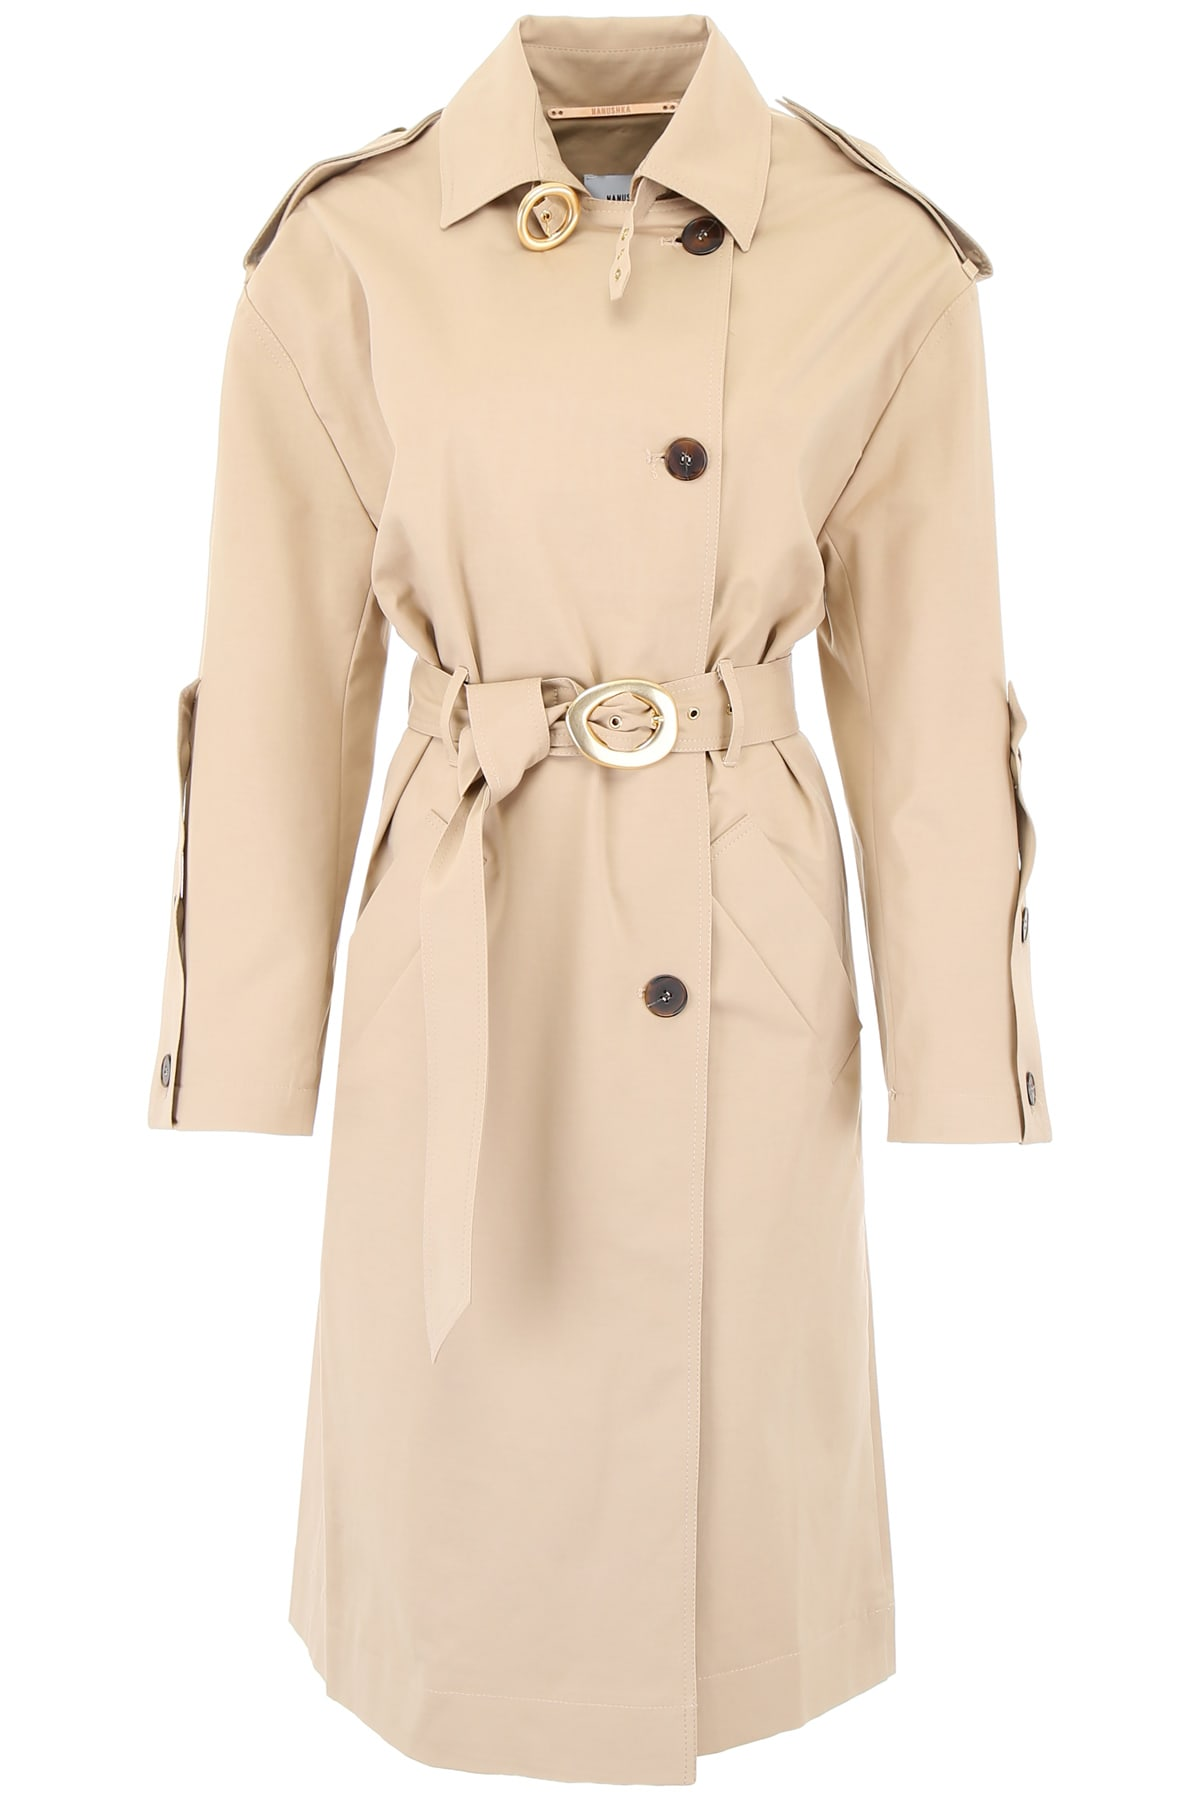 Nanushka Trench Coat